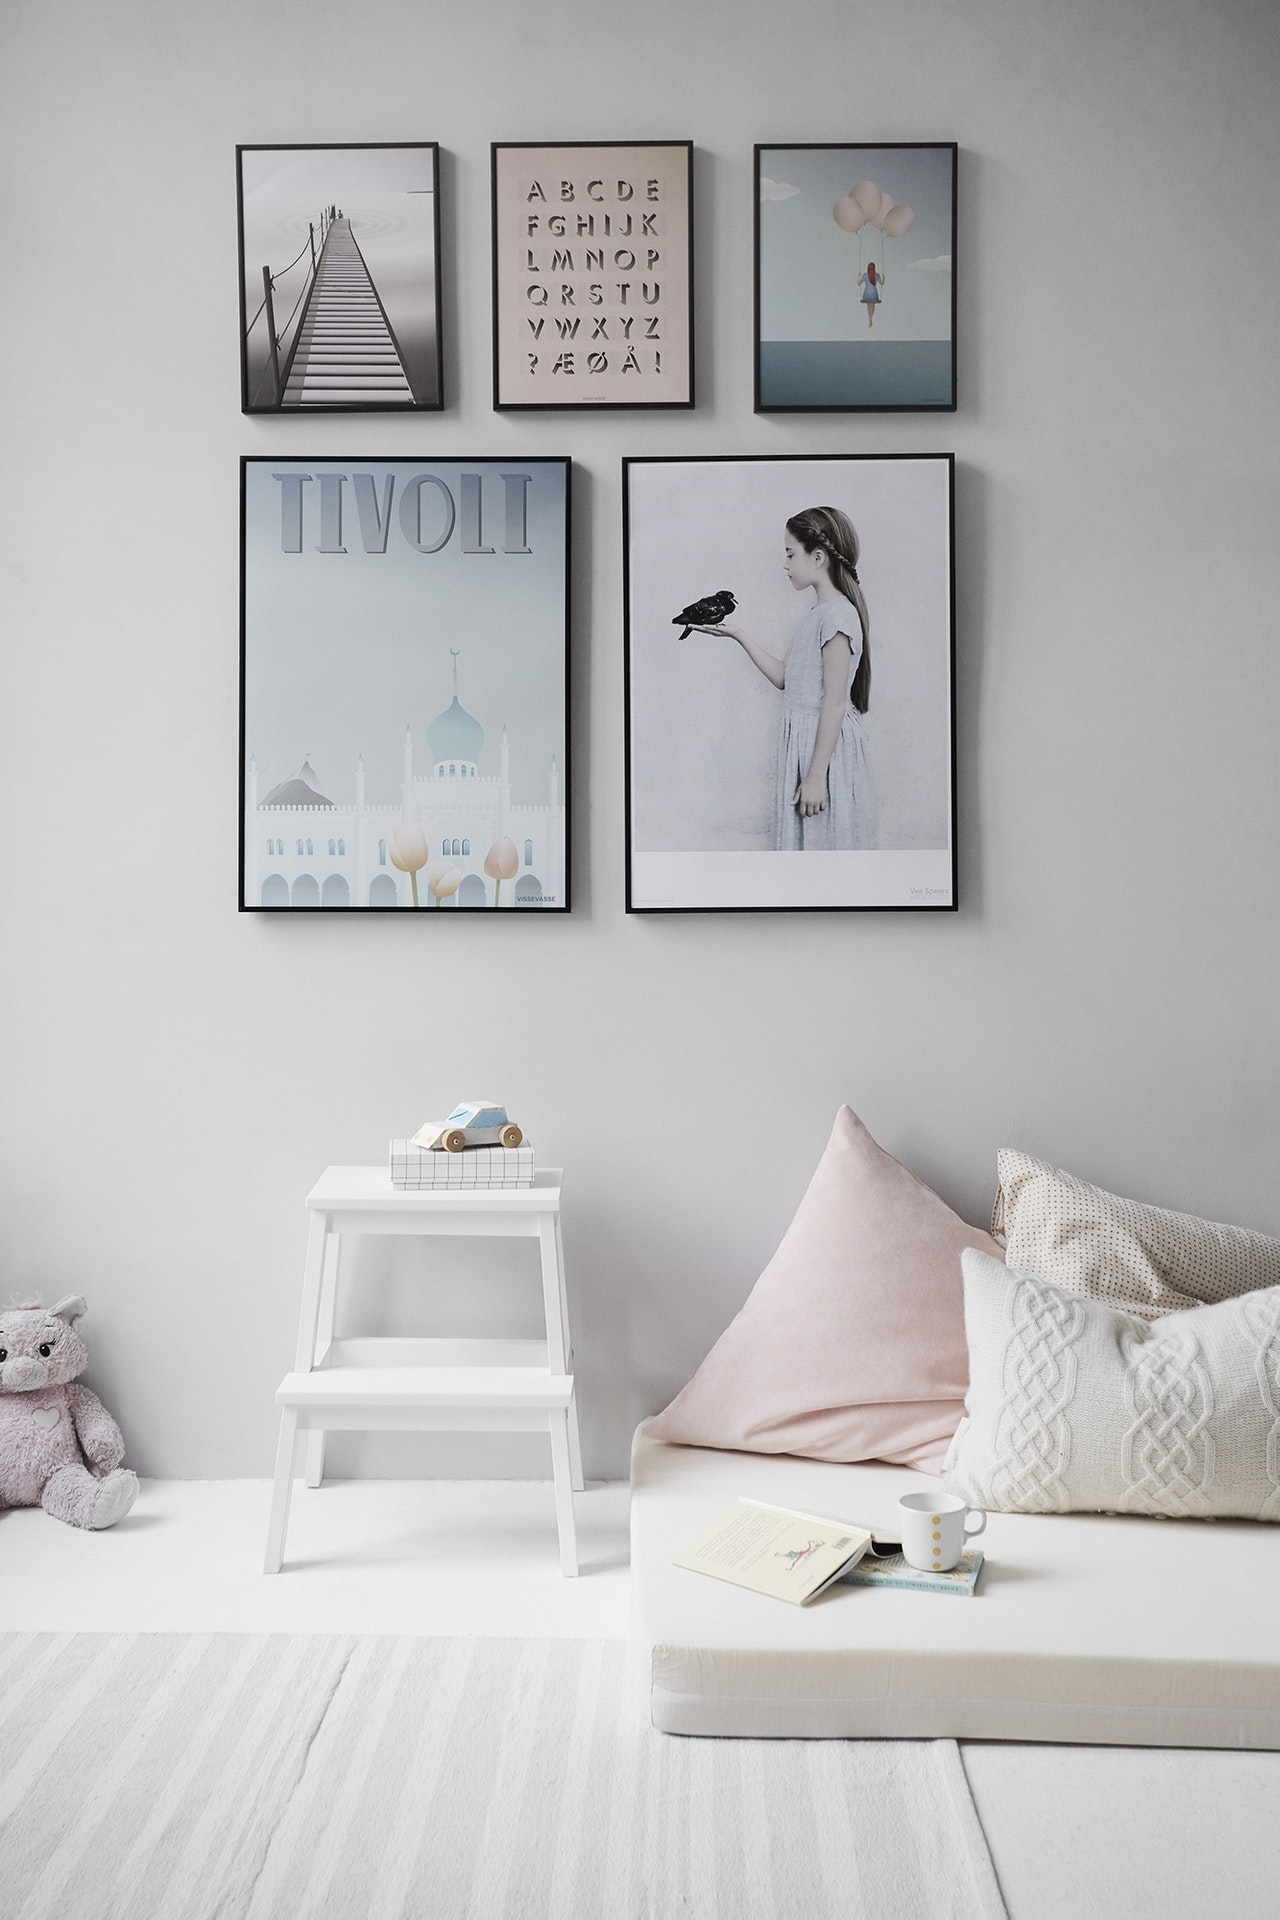 4 amazing home décor ideas to enchant your living style